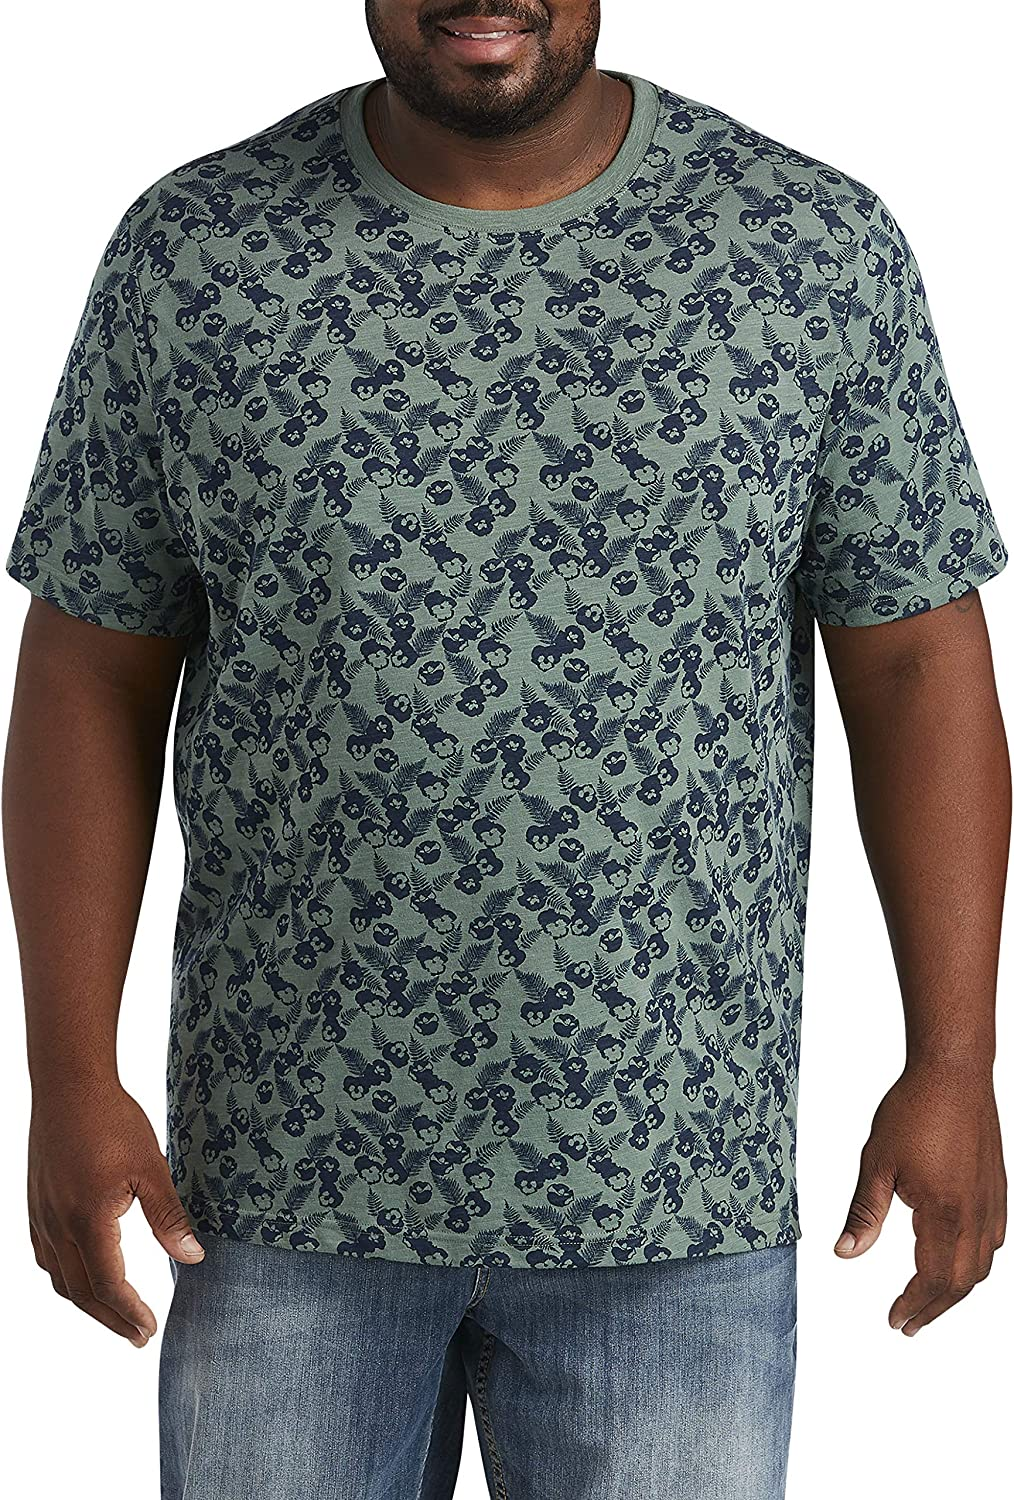 Harbor Bay by DXL Big and Tall Floral Leaf Print Tee, Green Multi